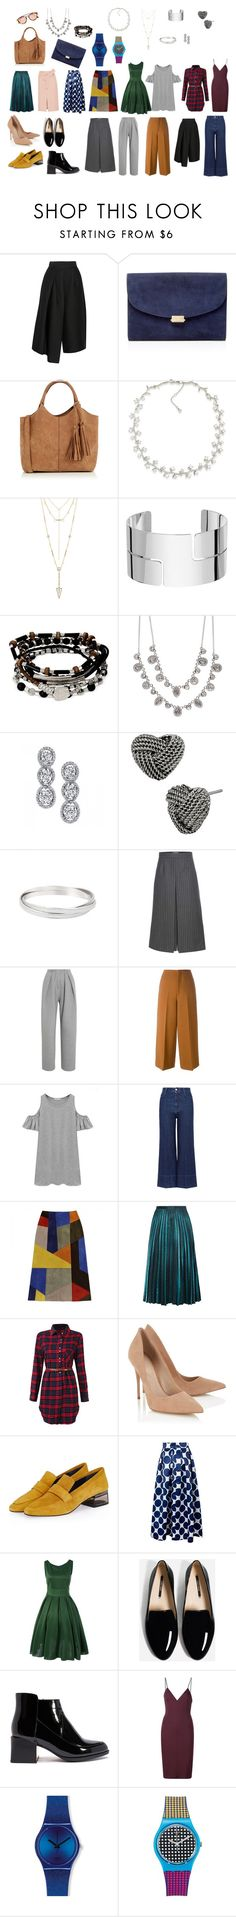 """""""For Demi Mur"""" by ellehaziahmetova on Polyvore featuring мода, TIBI, Mansur Gavriel, Oasis, Carolee, House of Harlow 1960, Dinh Van, Kenneth Cole, Givenchy и Harry Kotlar"""